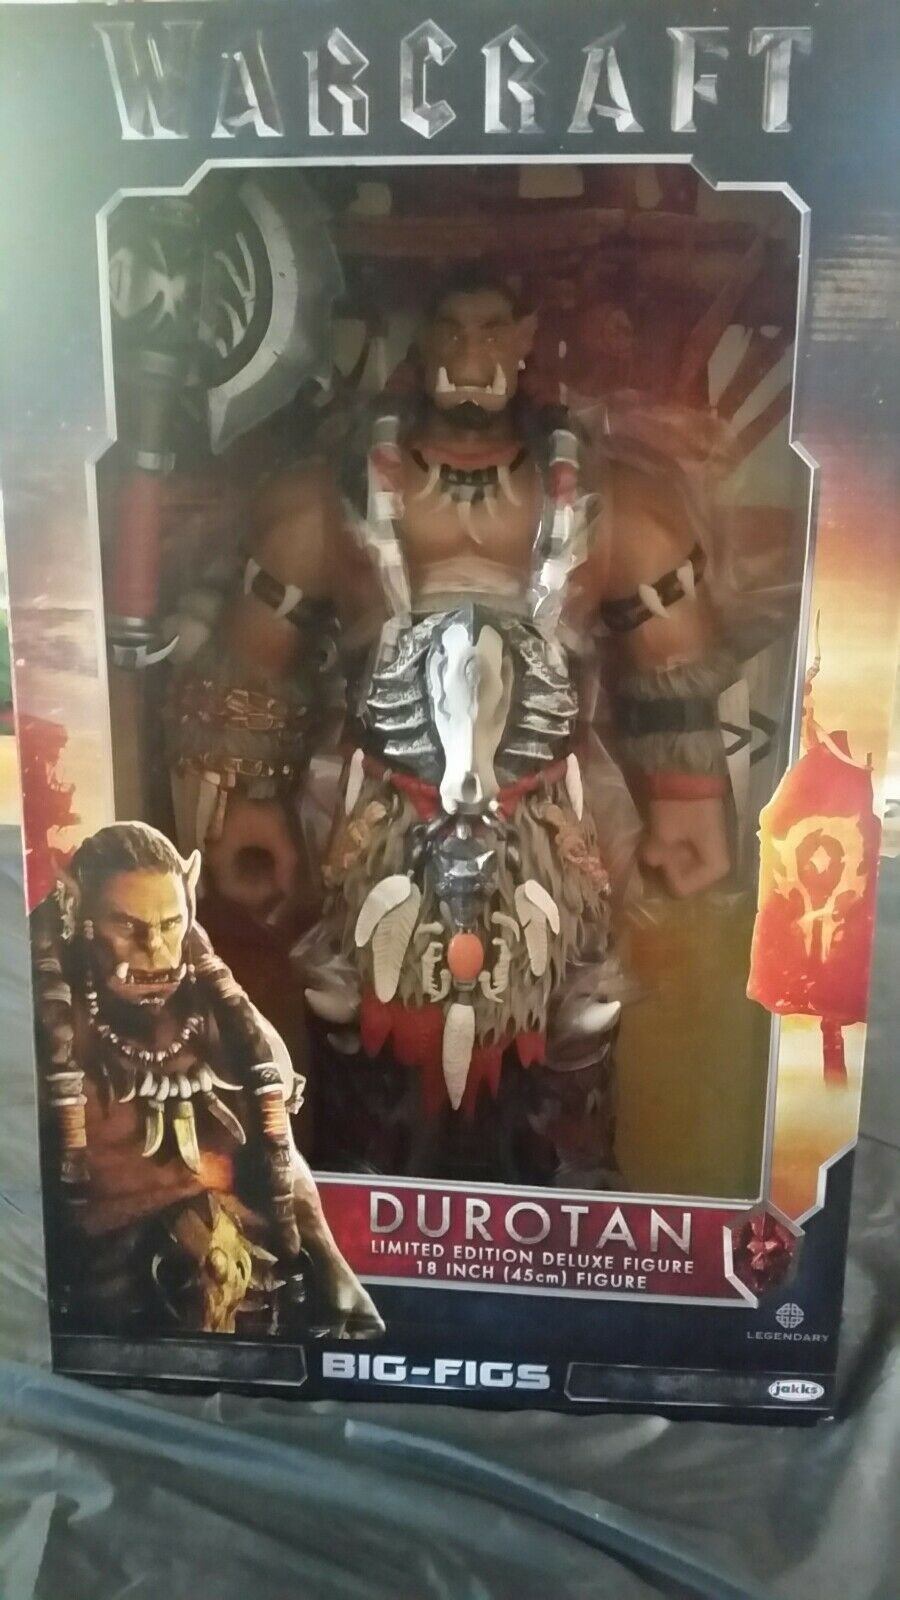 Warcraft burent 18-inch Action Figure 18  Jakks Pacific Big figs BRAND NEW